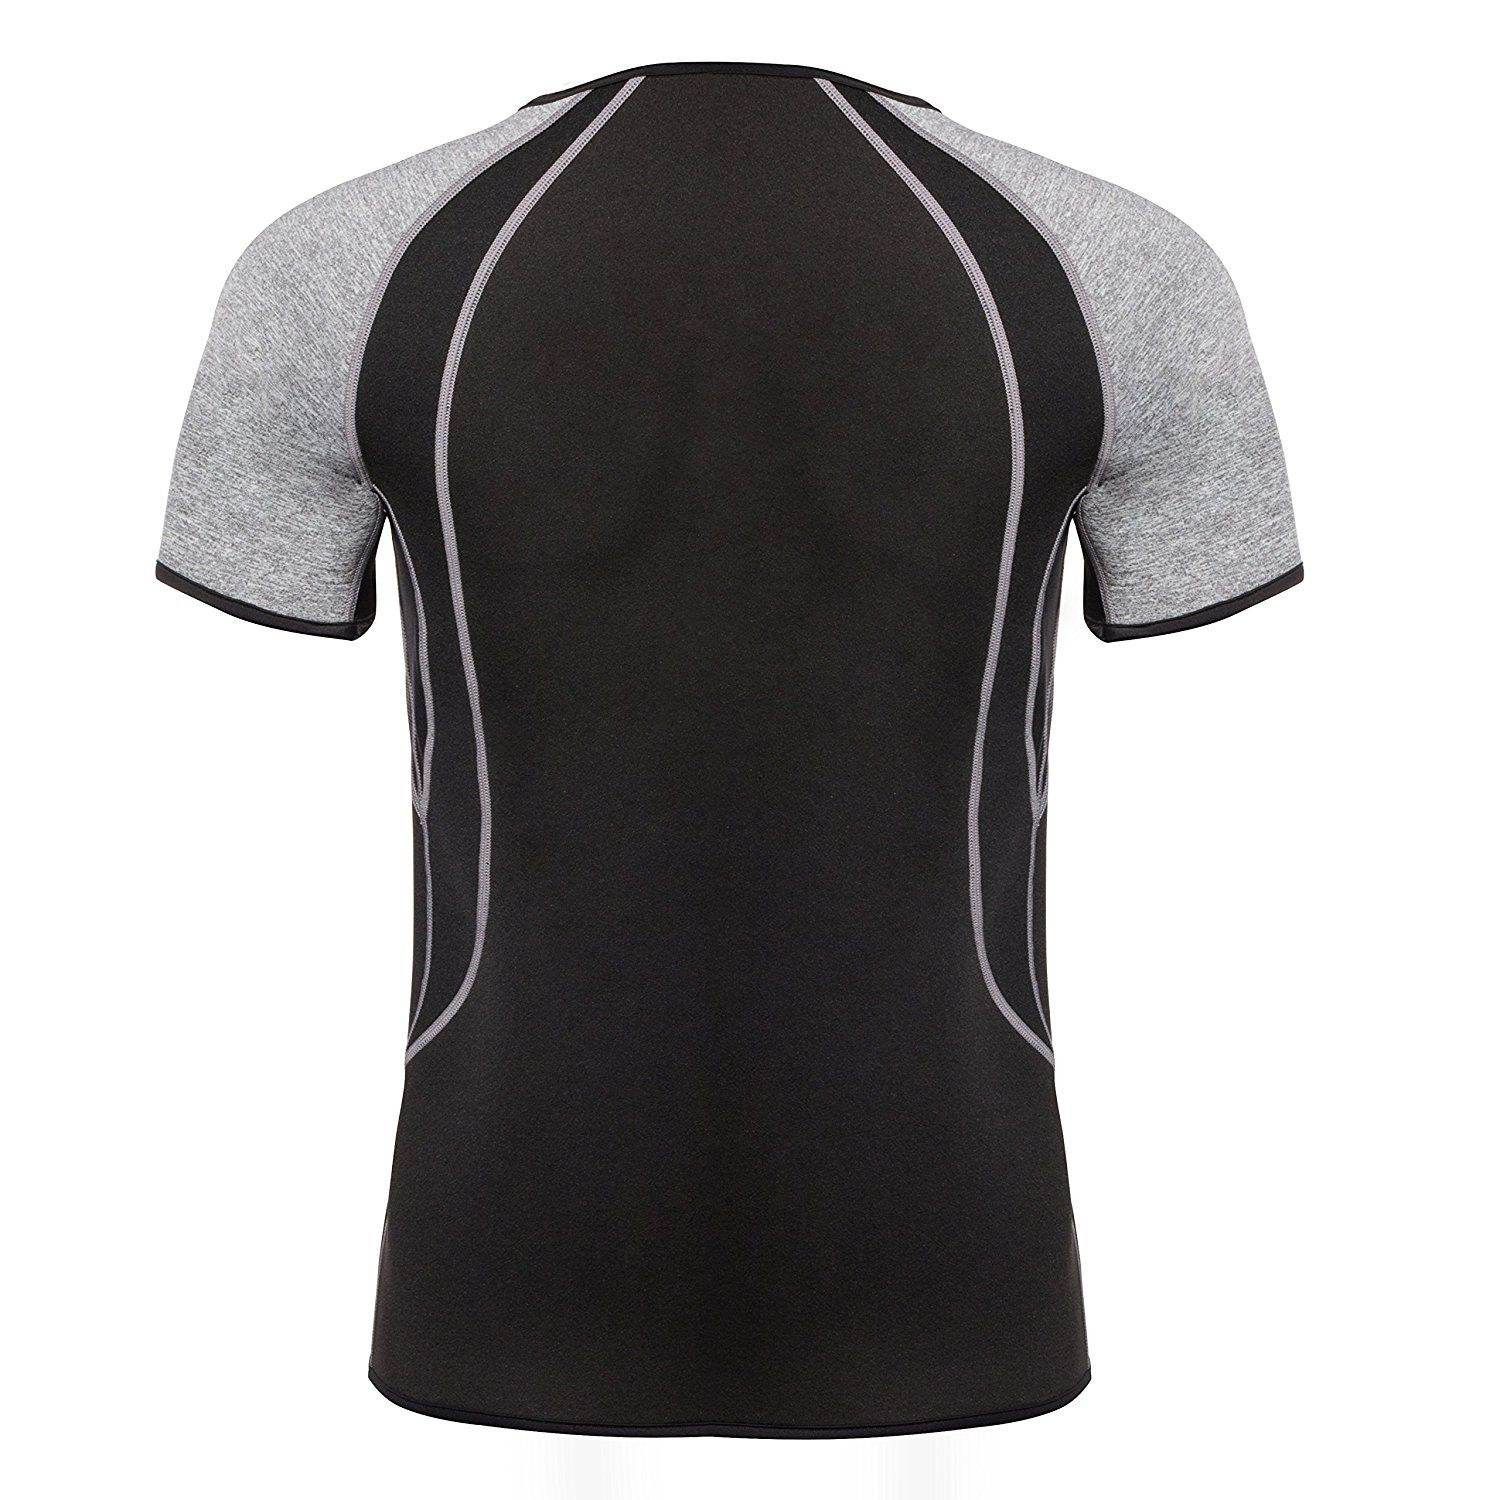 ef9cbff519 Amazon.com   Junlan Men Weight Loss Shirt Workout Neoprene Top Training Body  Shaper Clothes Sweat Sauna Suit Exercise Fitness Short Sleeve (Black